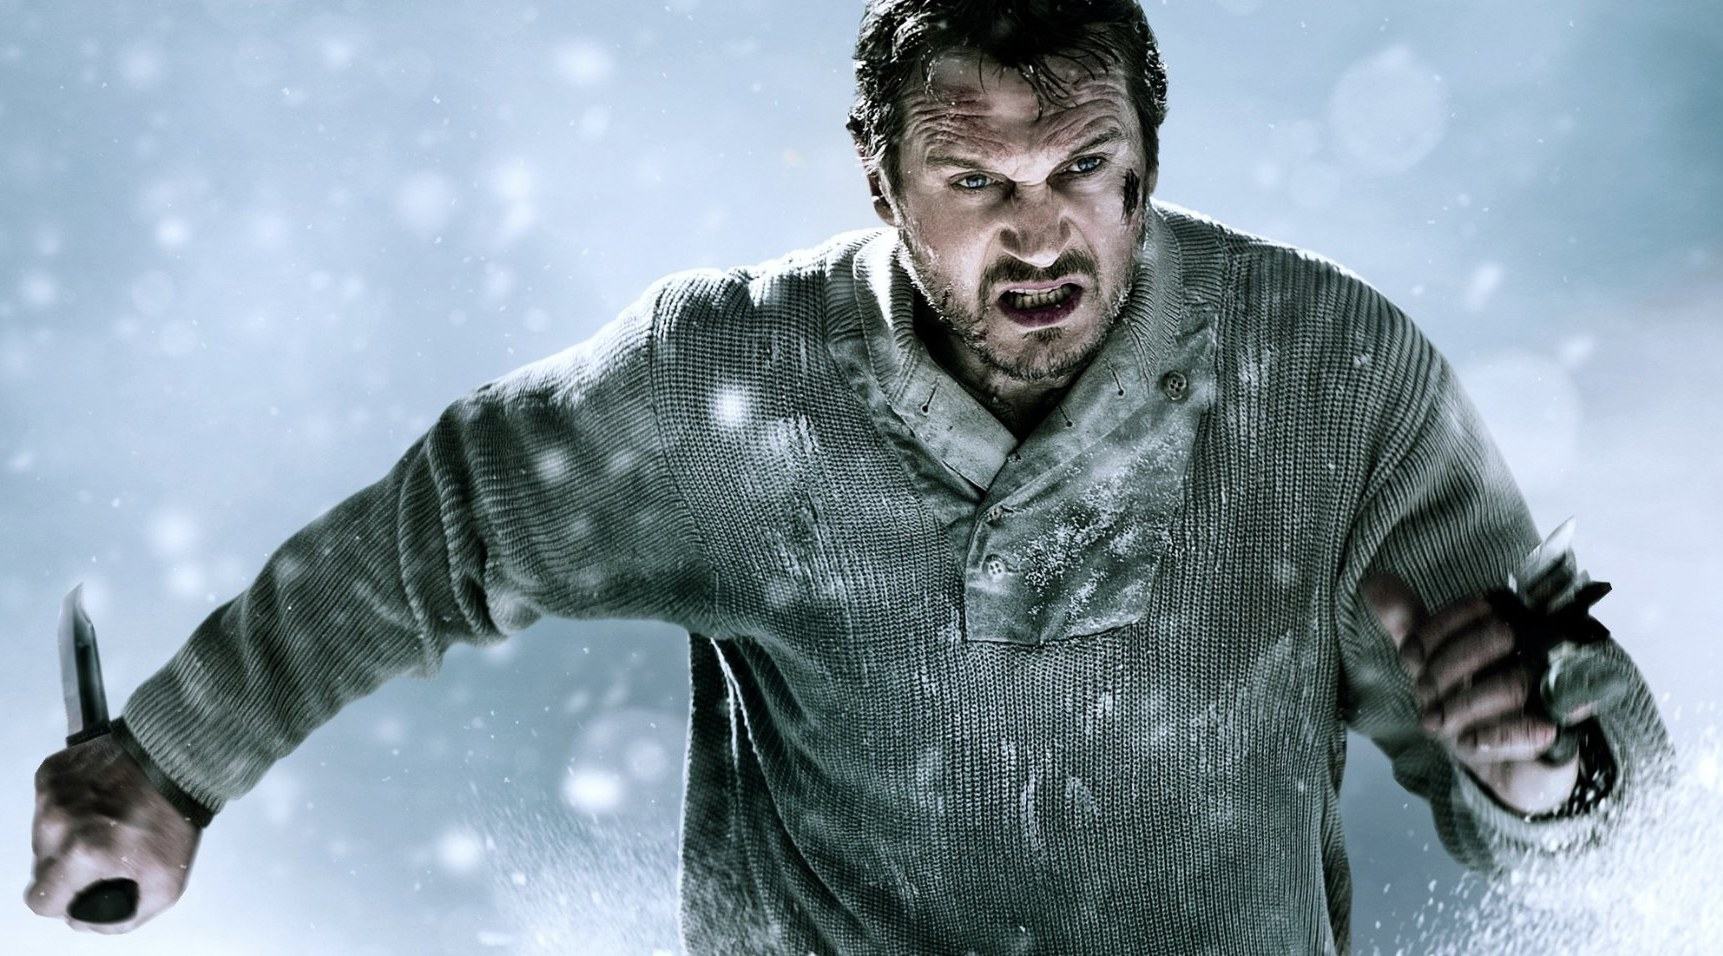 Liam Neeson film 'Hard Powder' moves to BC after rejection in Alberta